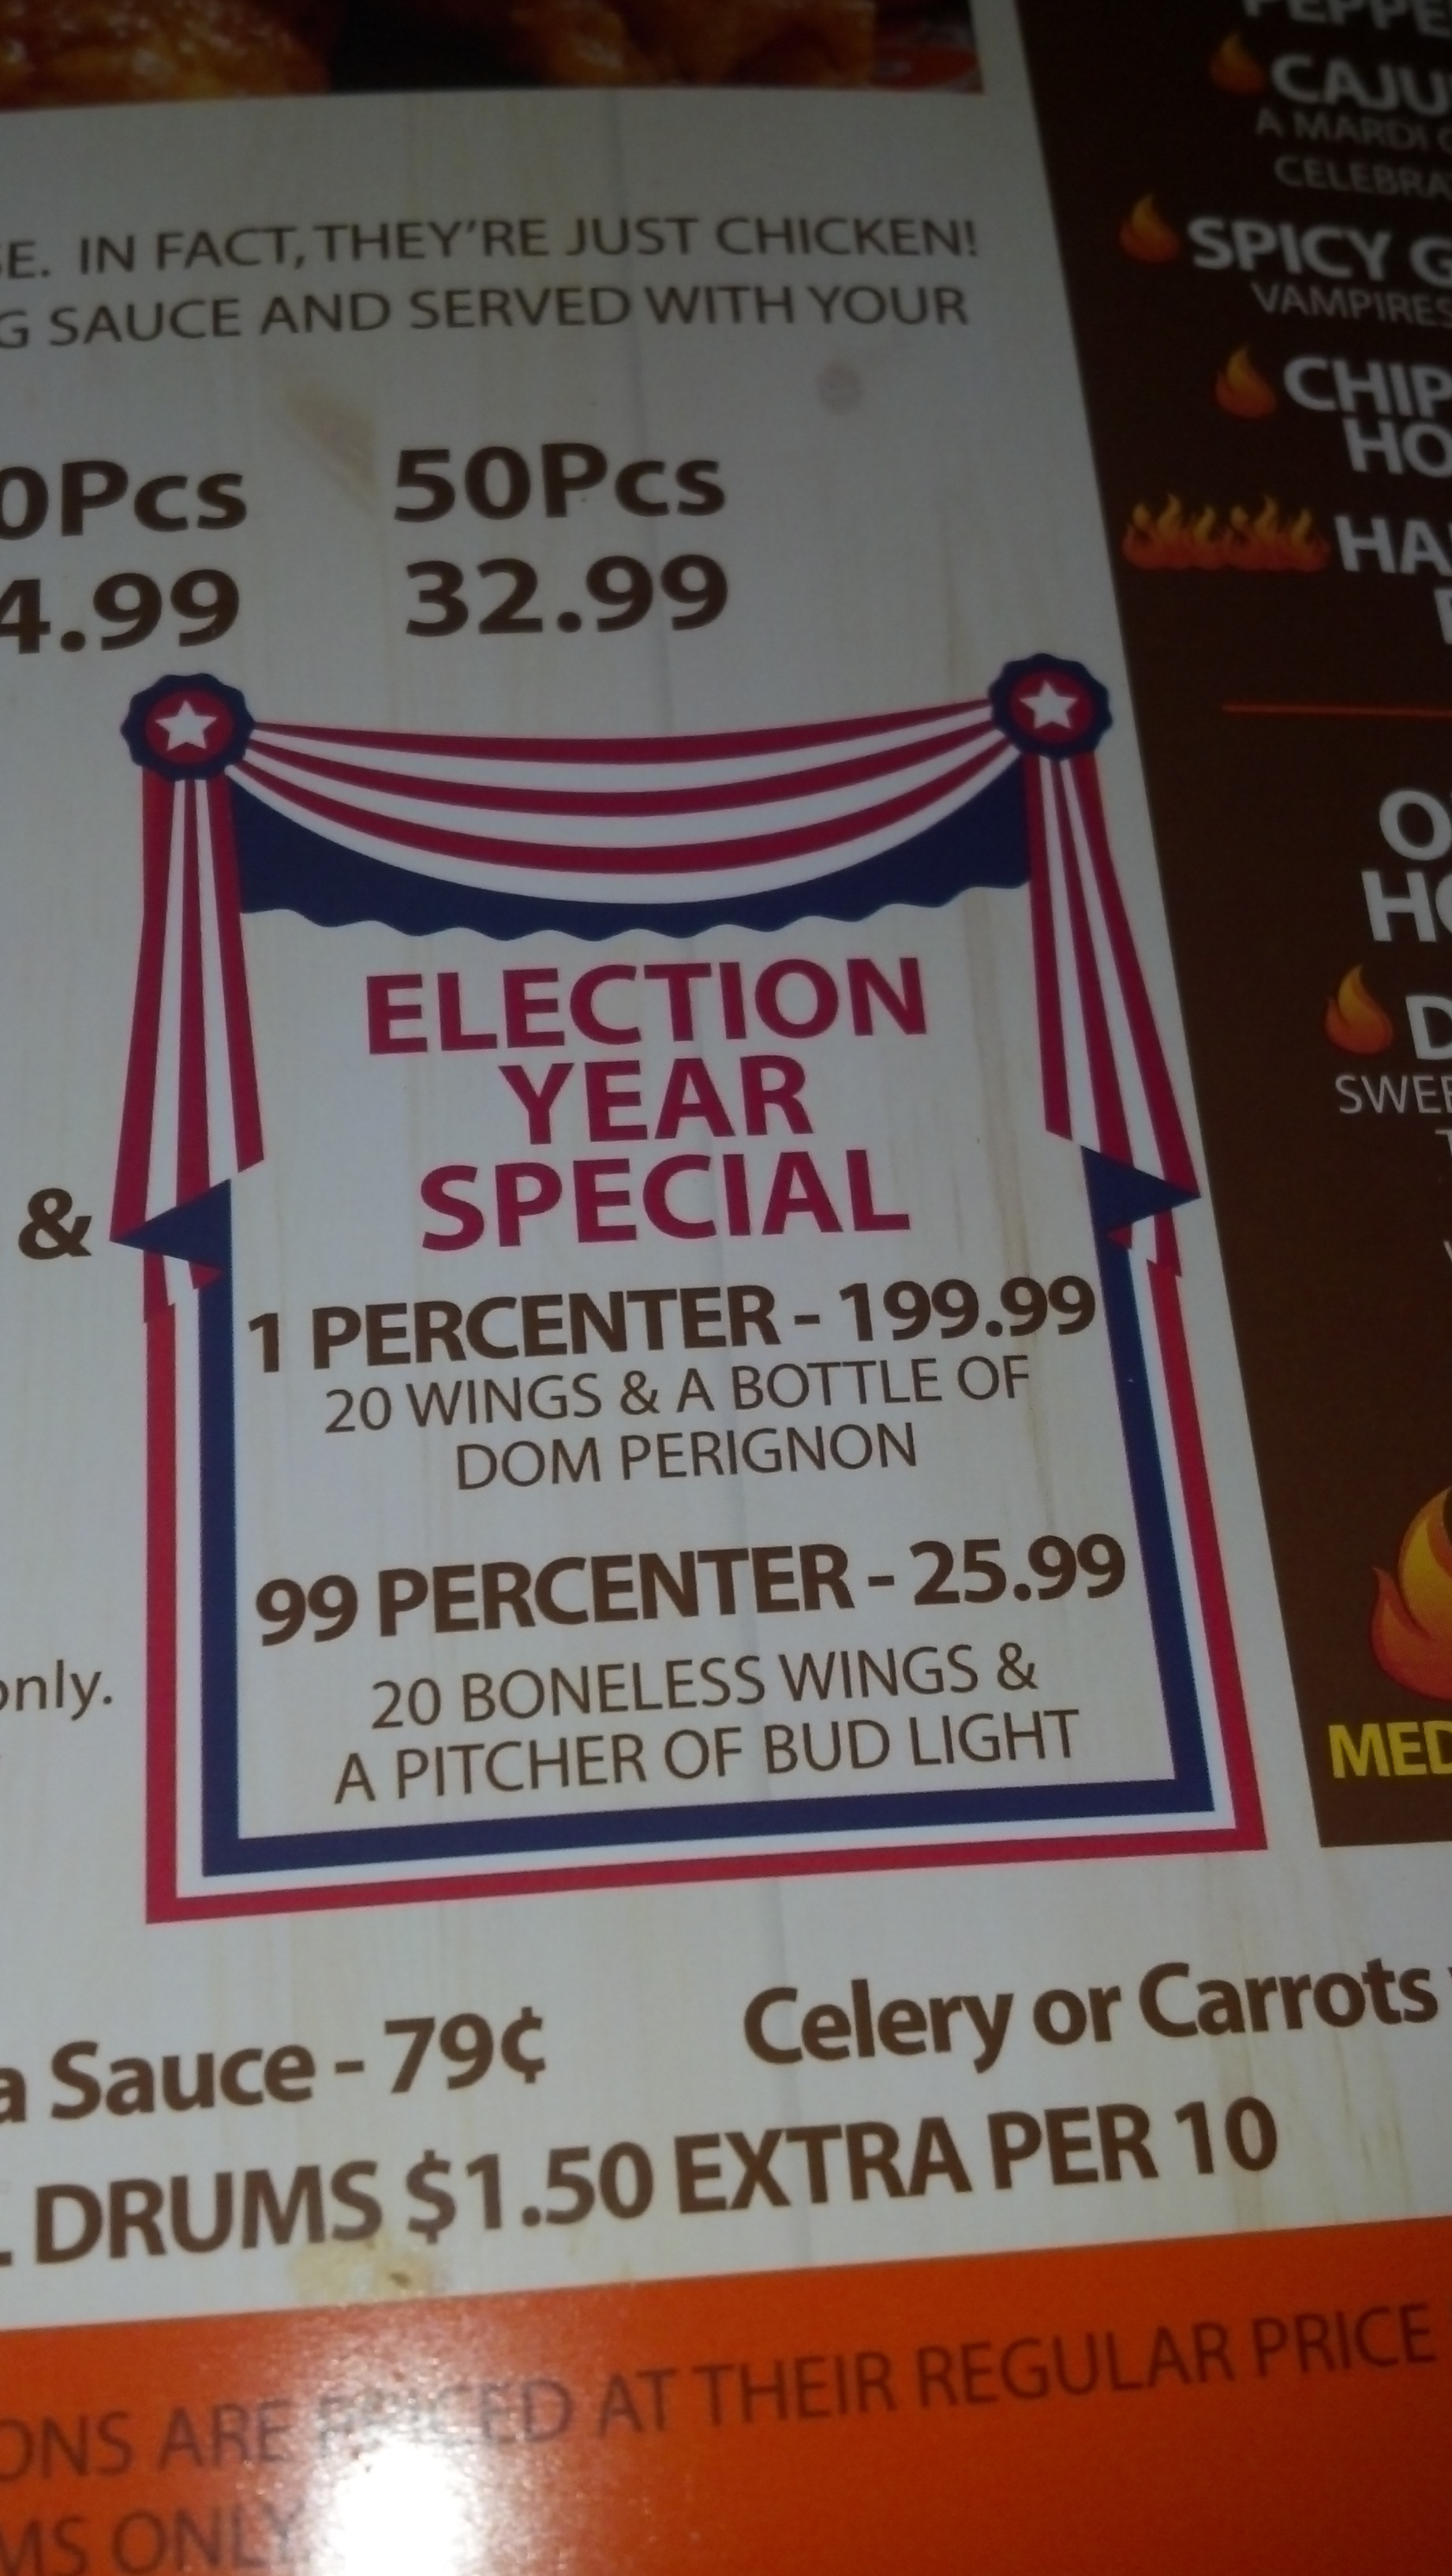 Hooters letting you make a statement. TFM.